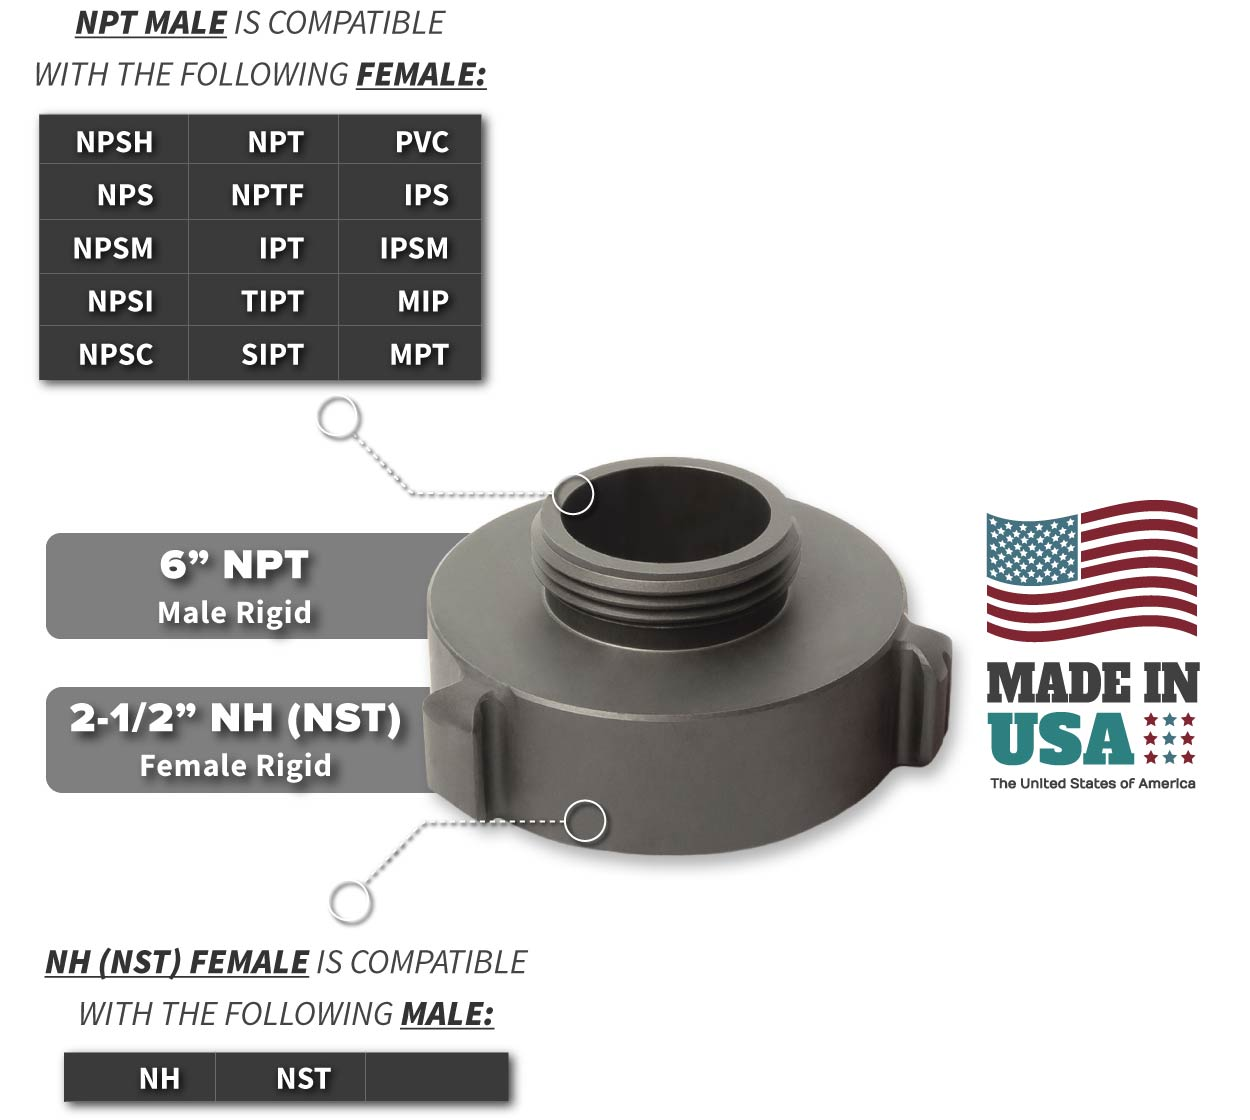 2.5 Inch NH-NST Female x 6 Inch NPT Male Compatibility Thread Chart